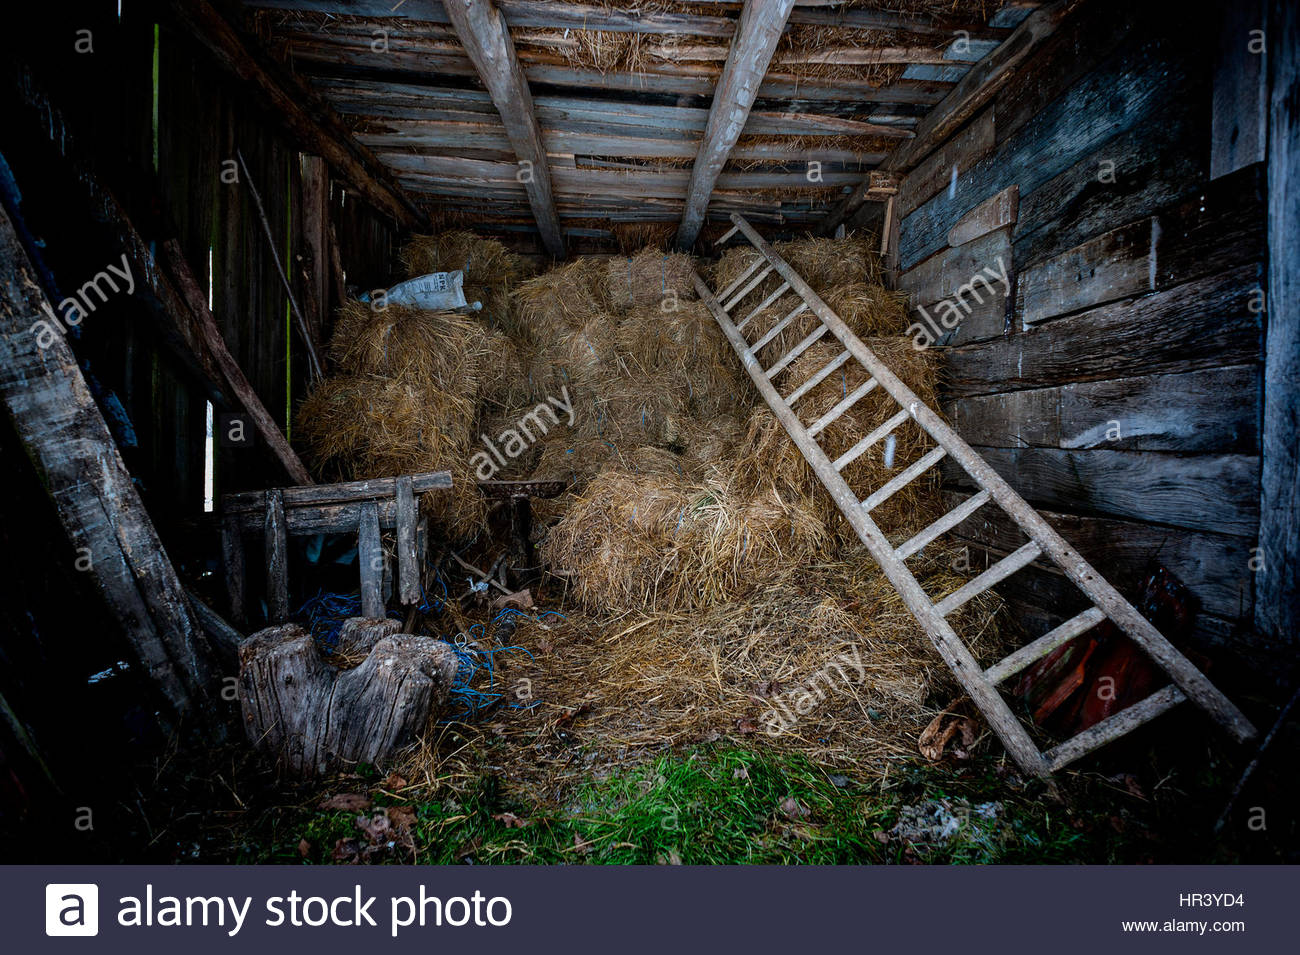 Interior Of Barn With Hay Bales Stacks And Tools